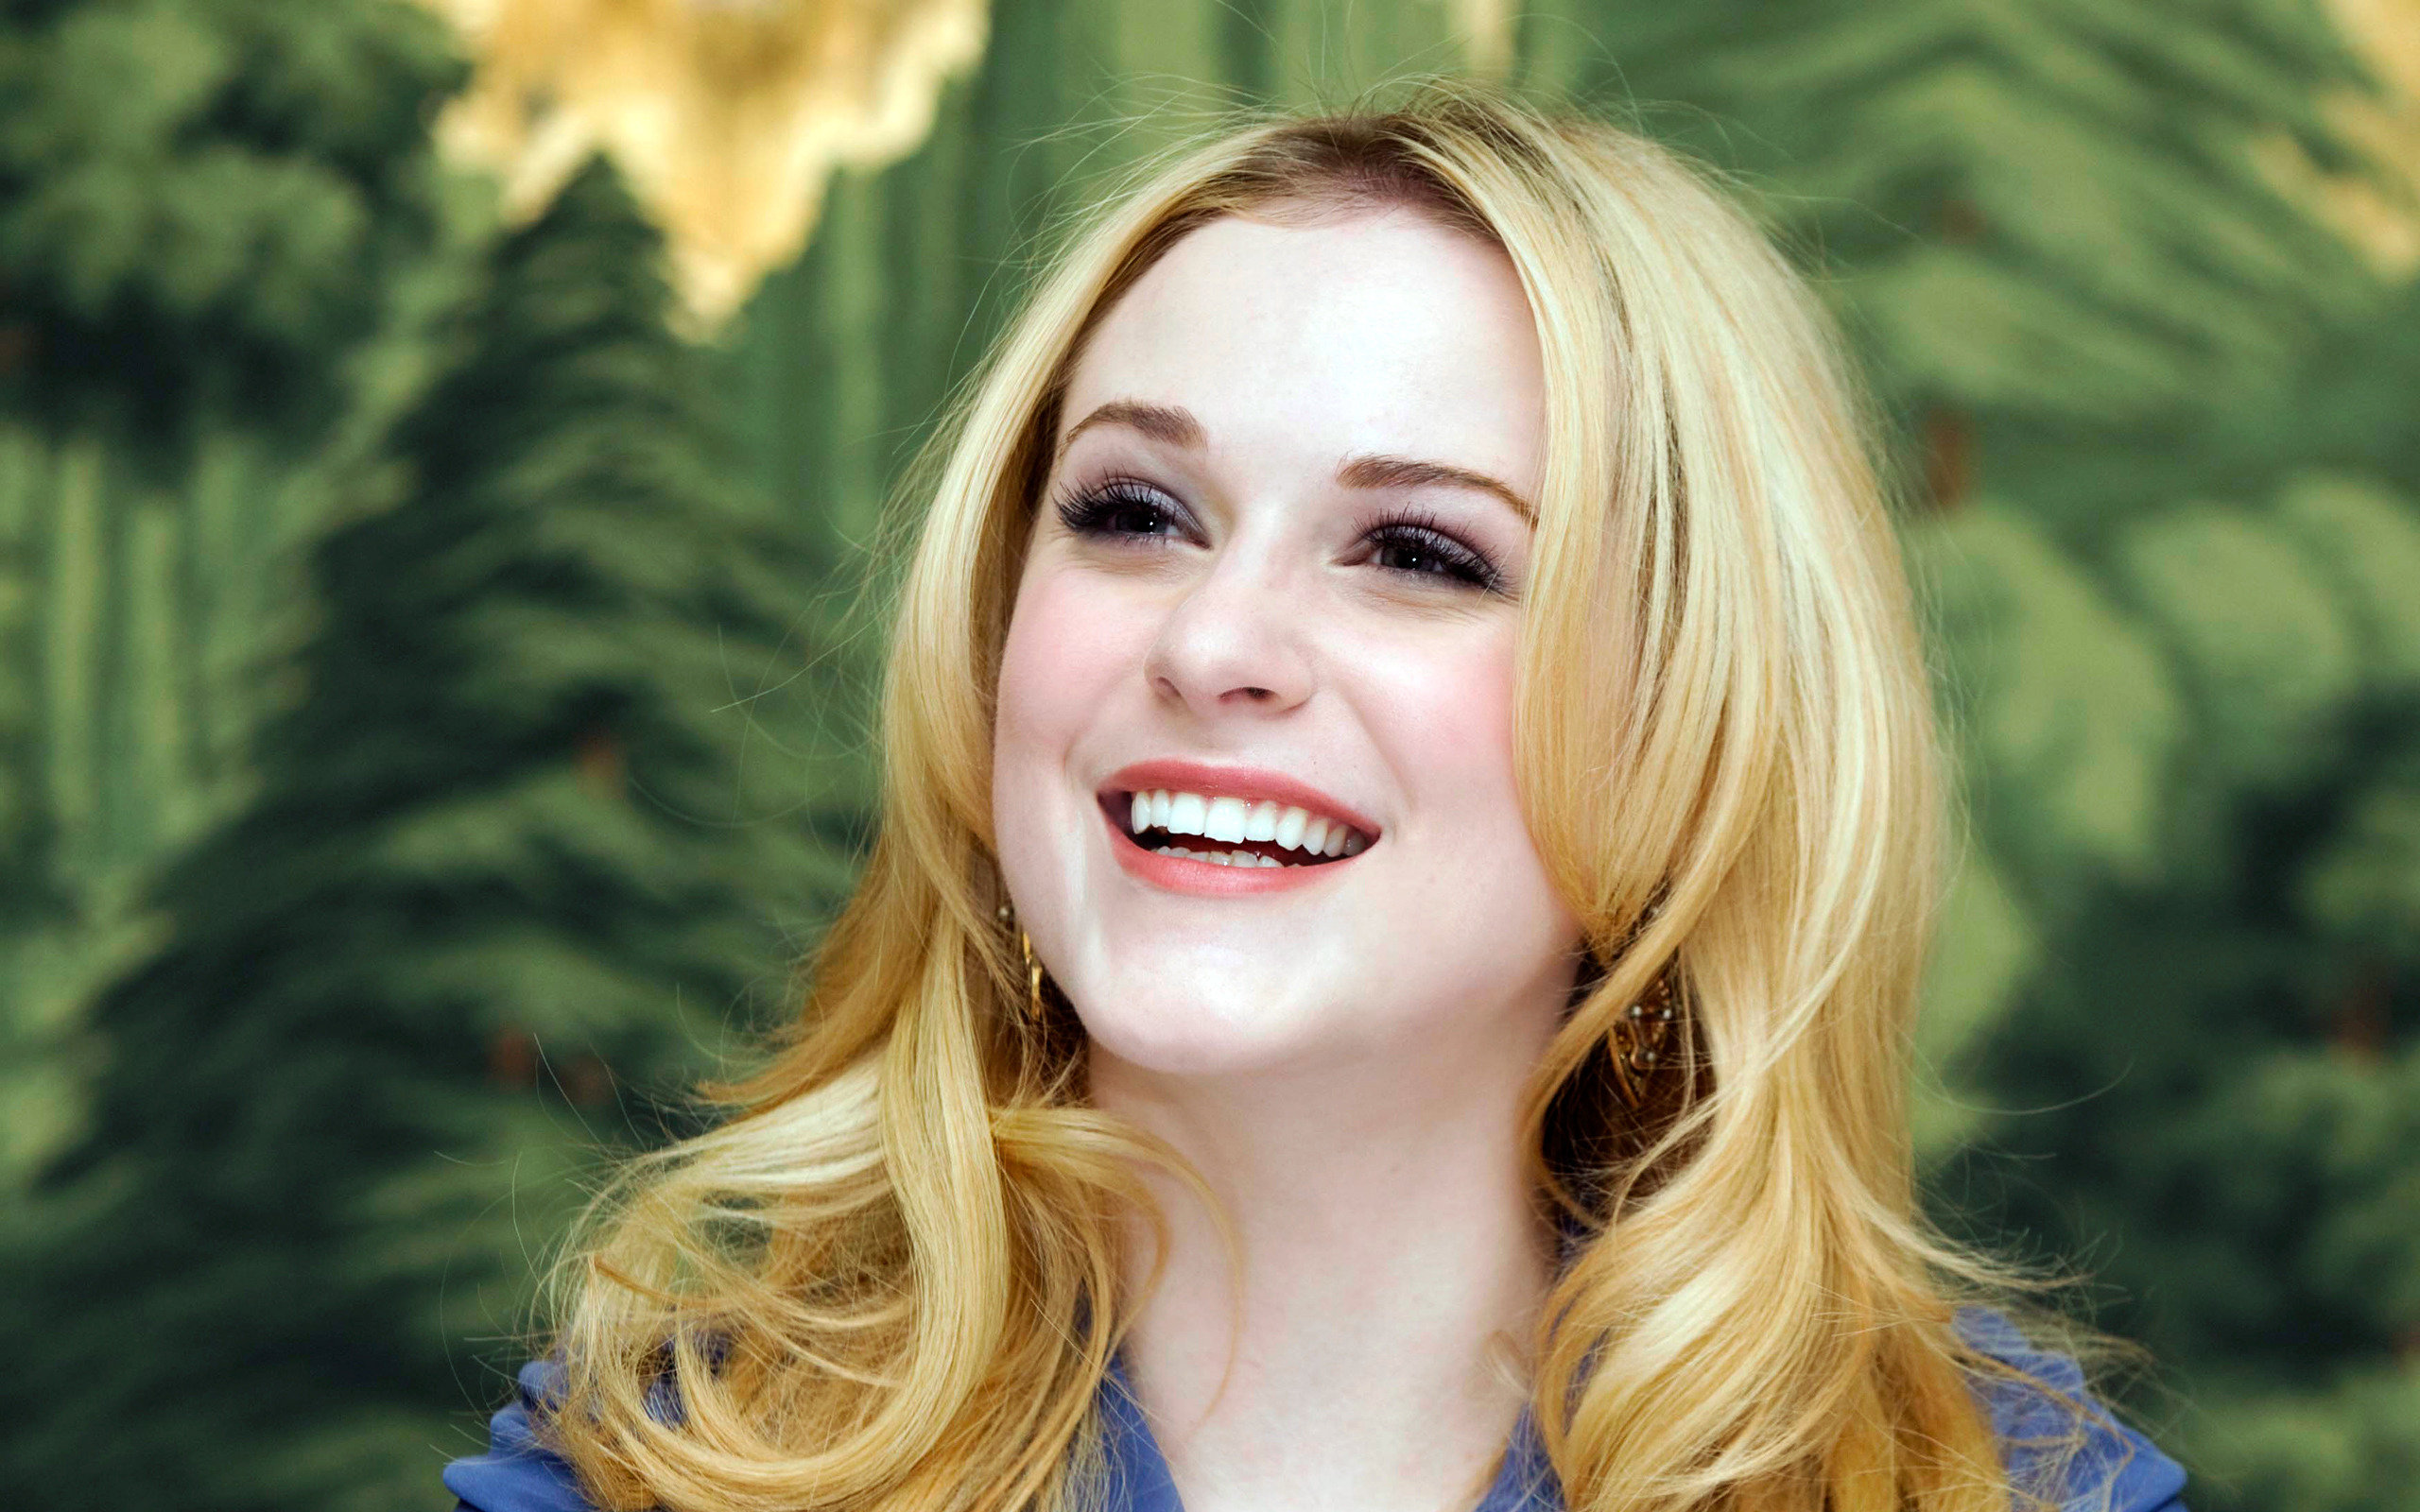 Awesome Evan Rachel Wood free wallpaper ID:8744 for hd 2560x1600 PC